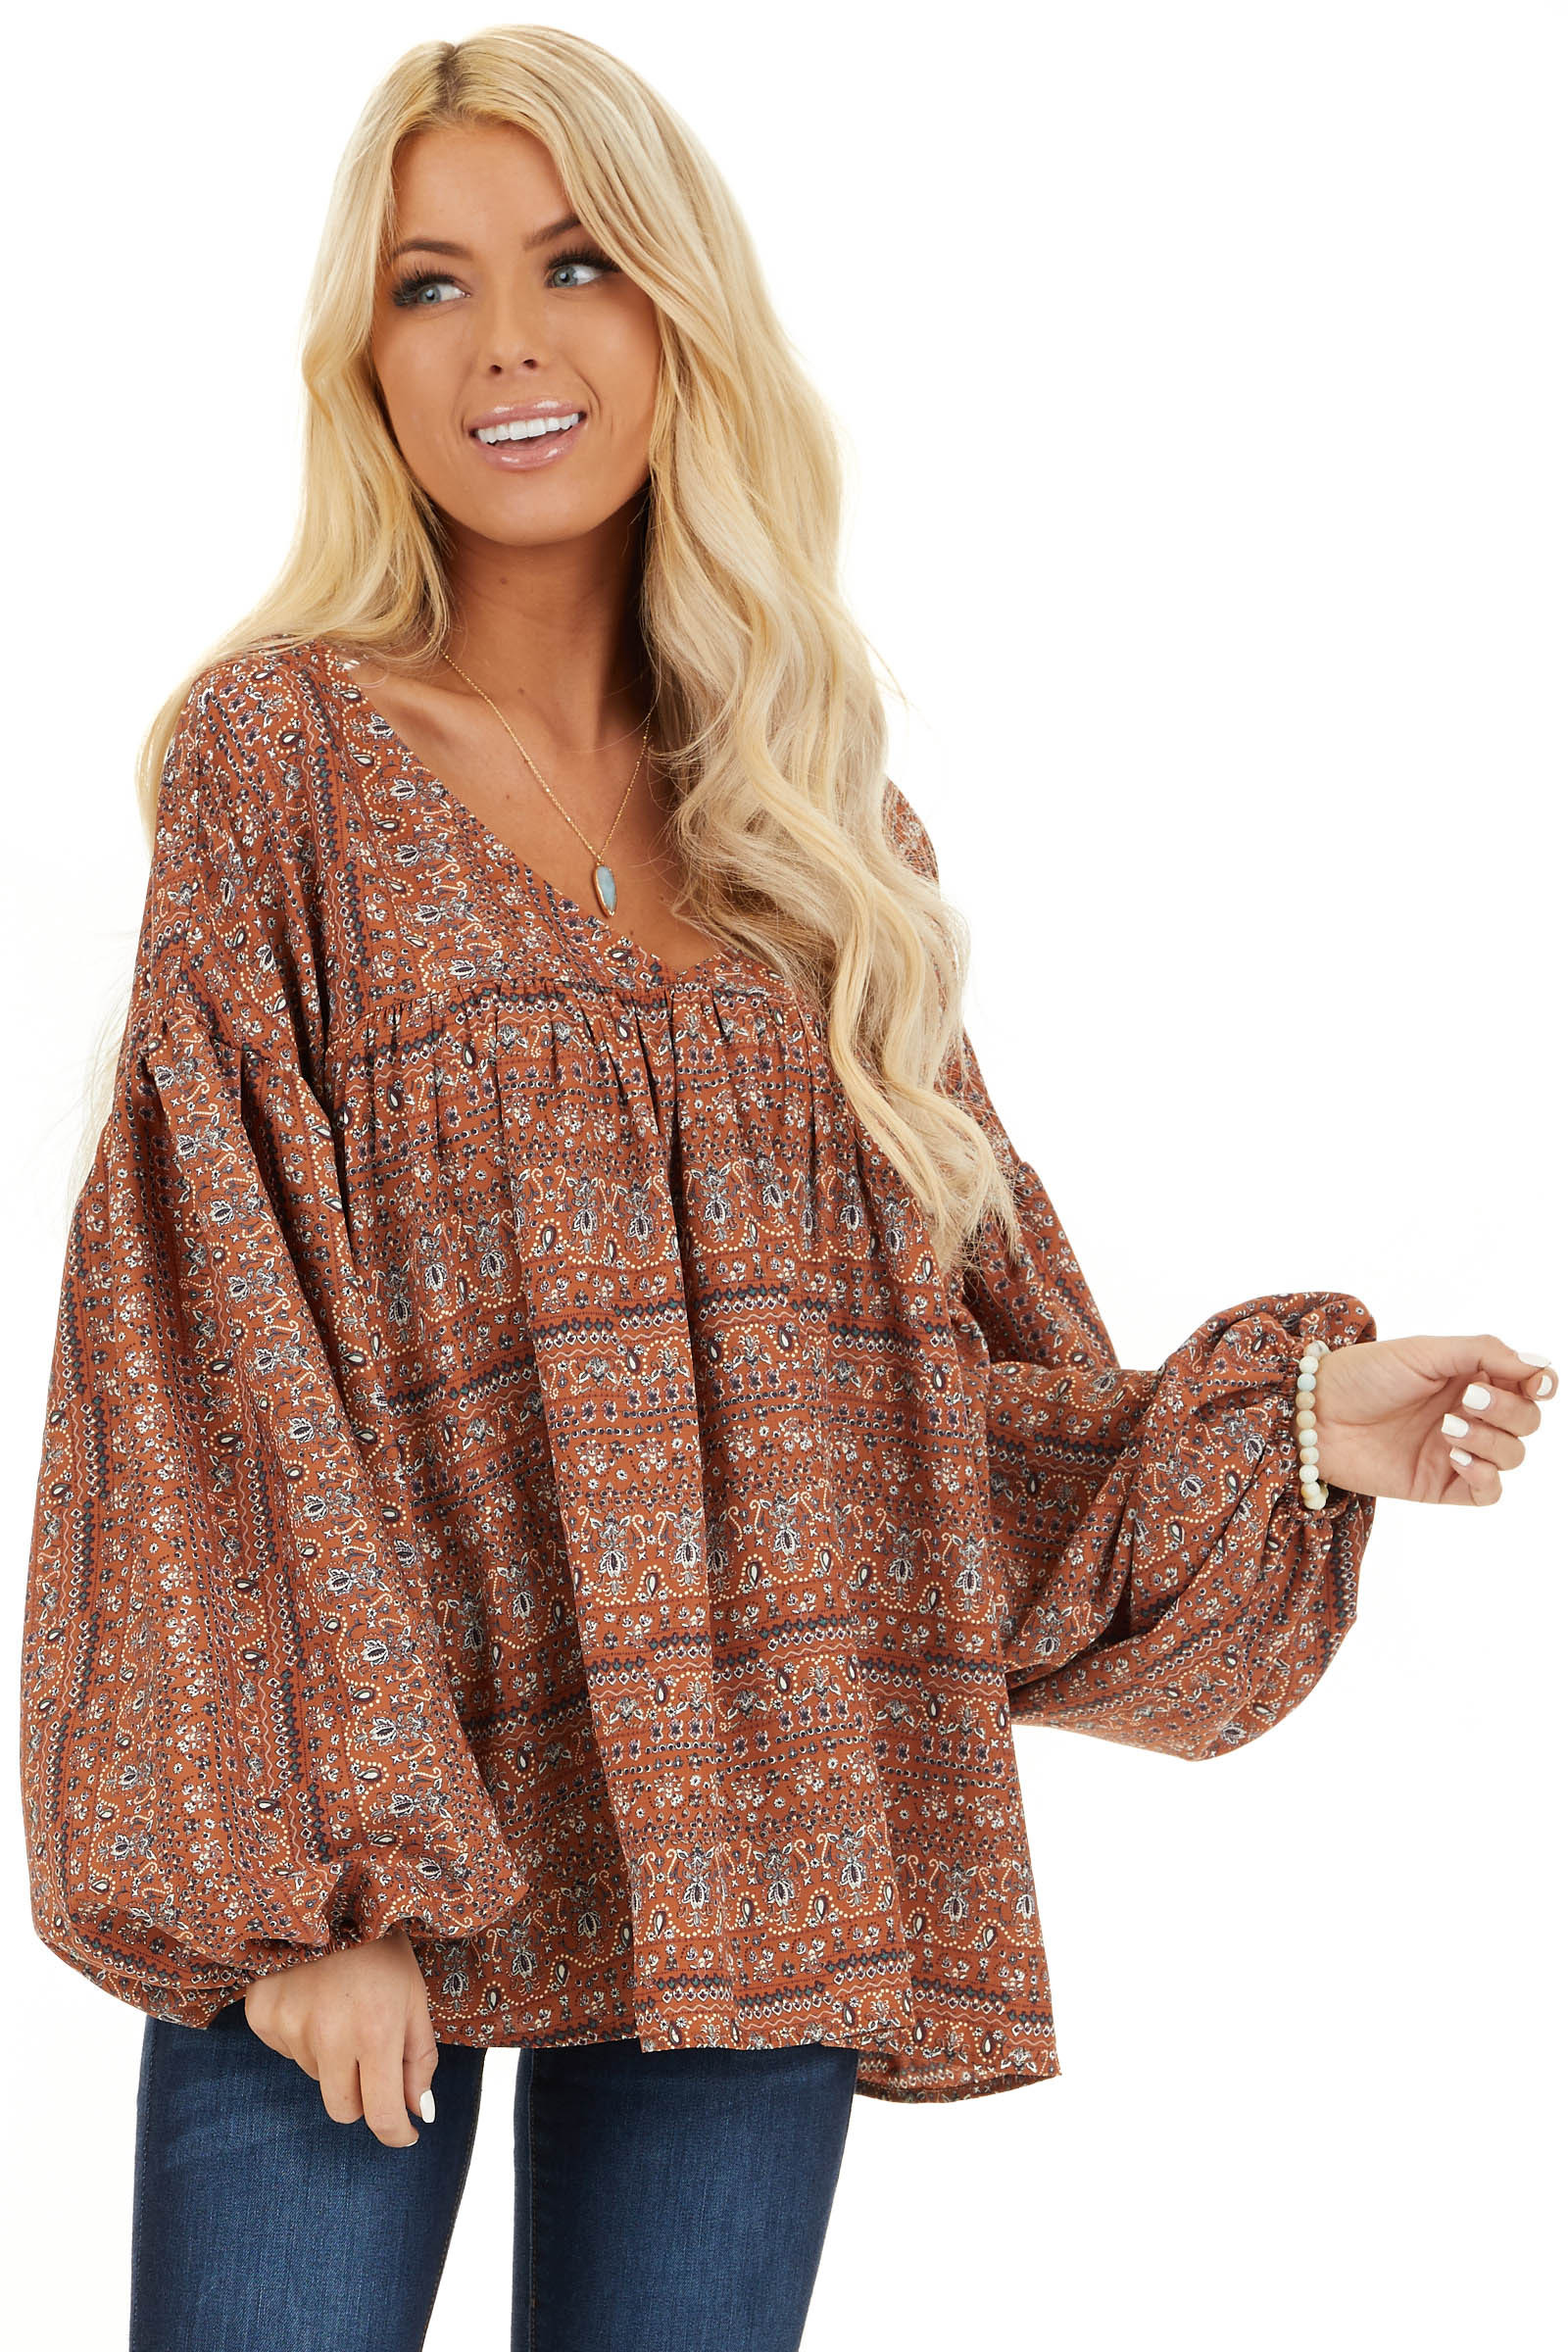 Cinnamon Multi Print V Neck Top with Long Balloon Sleeves front close up